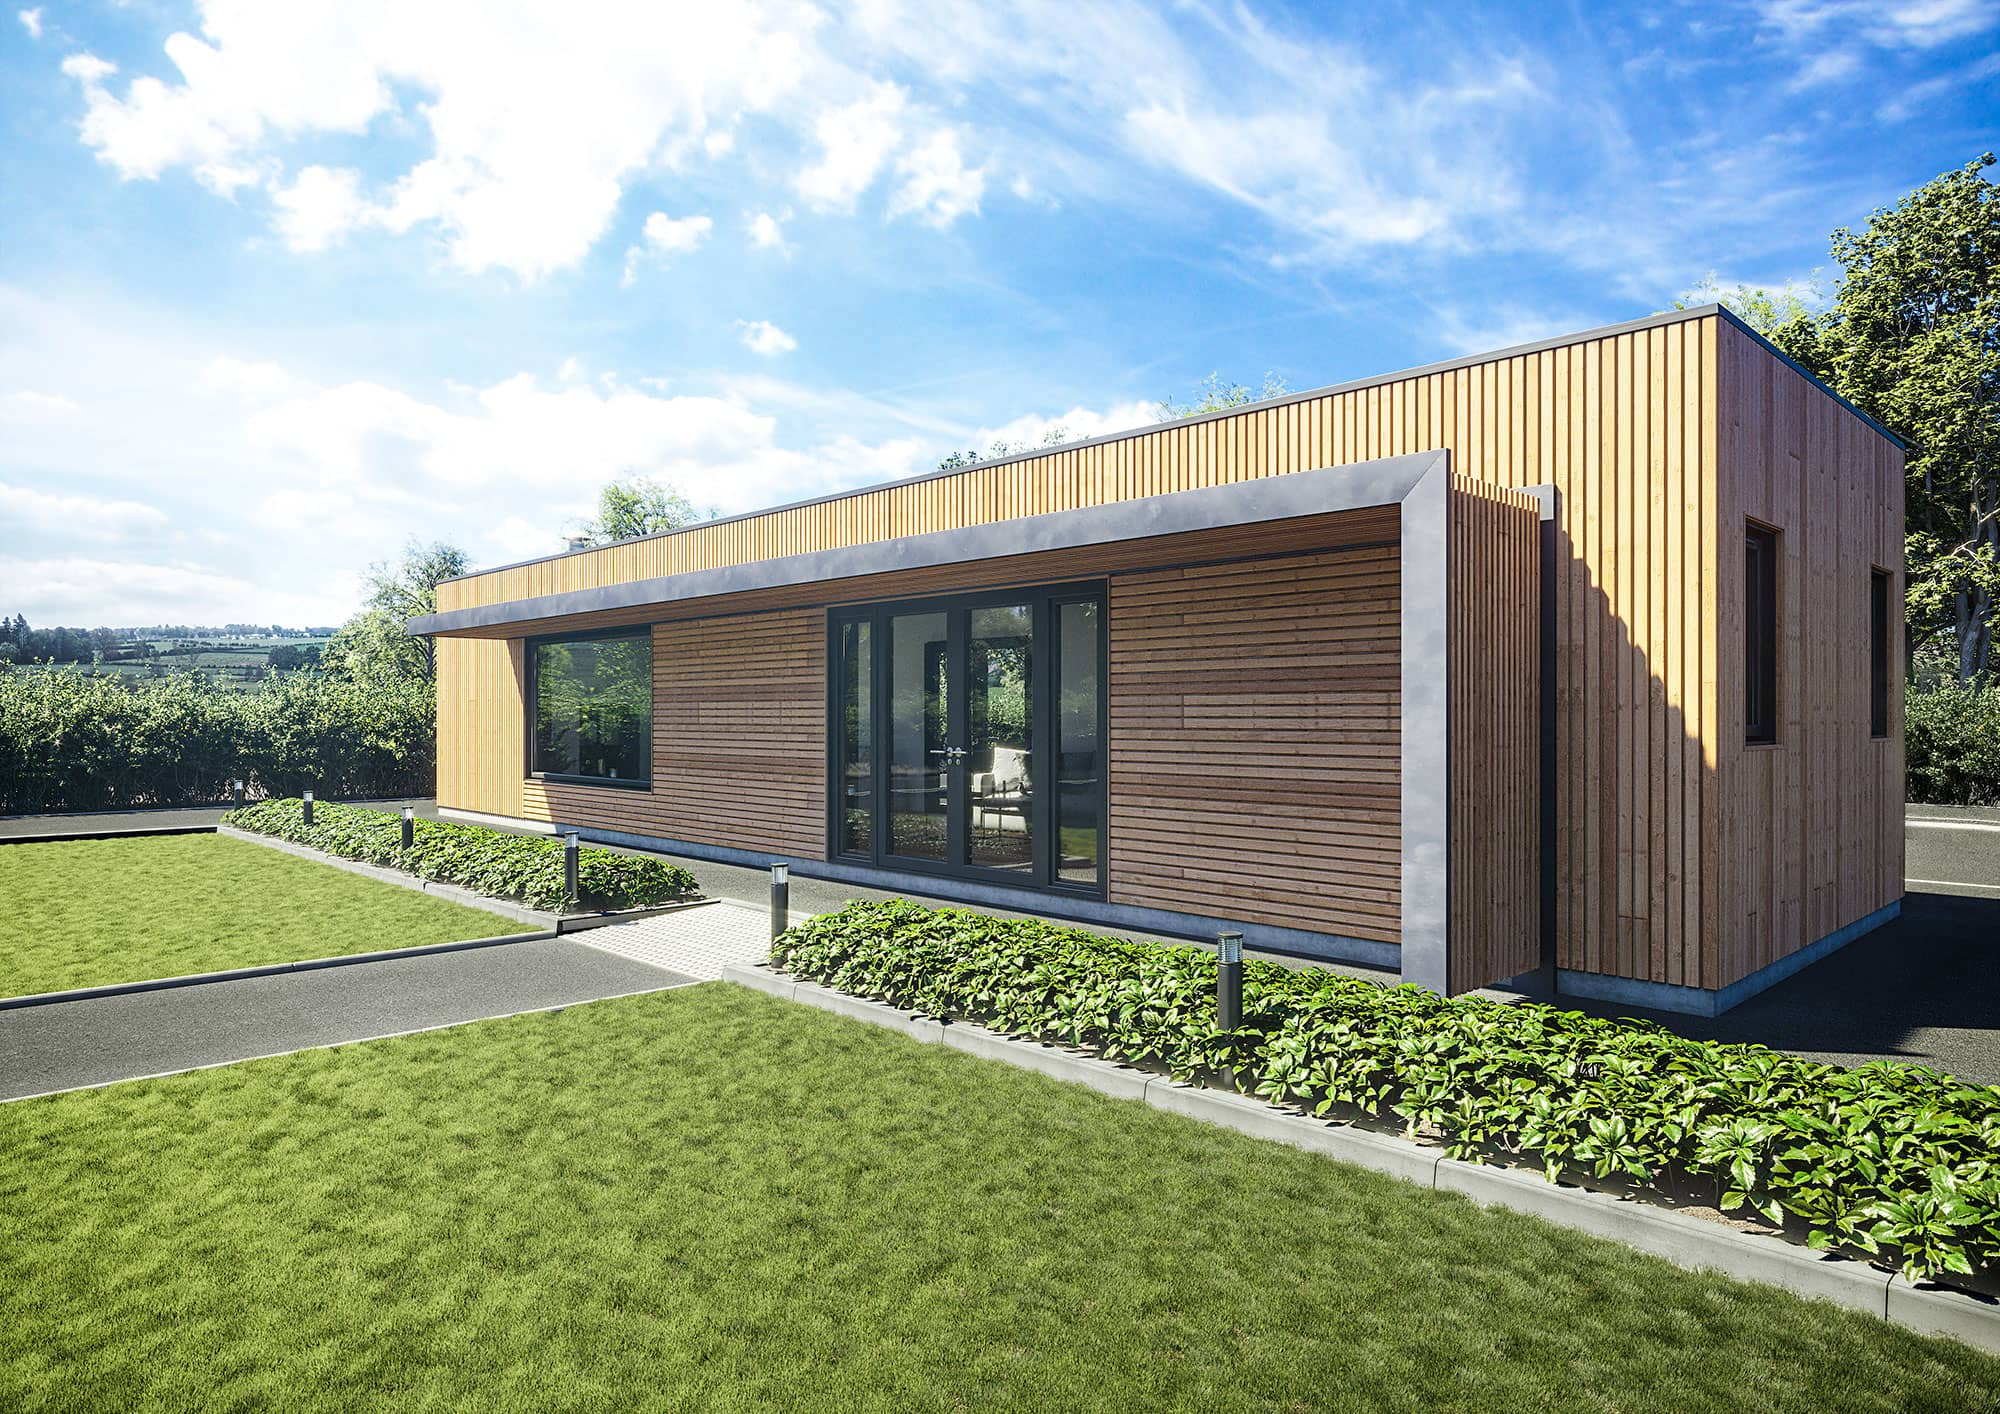 5 Reasons Why You Should Choose a Modular Garden Office